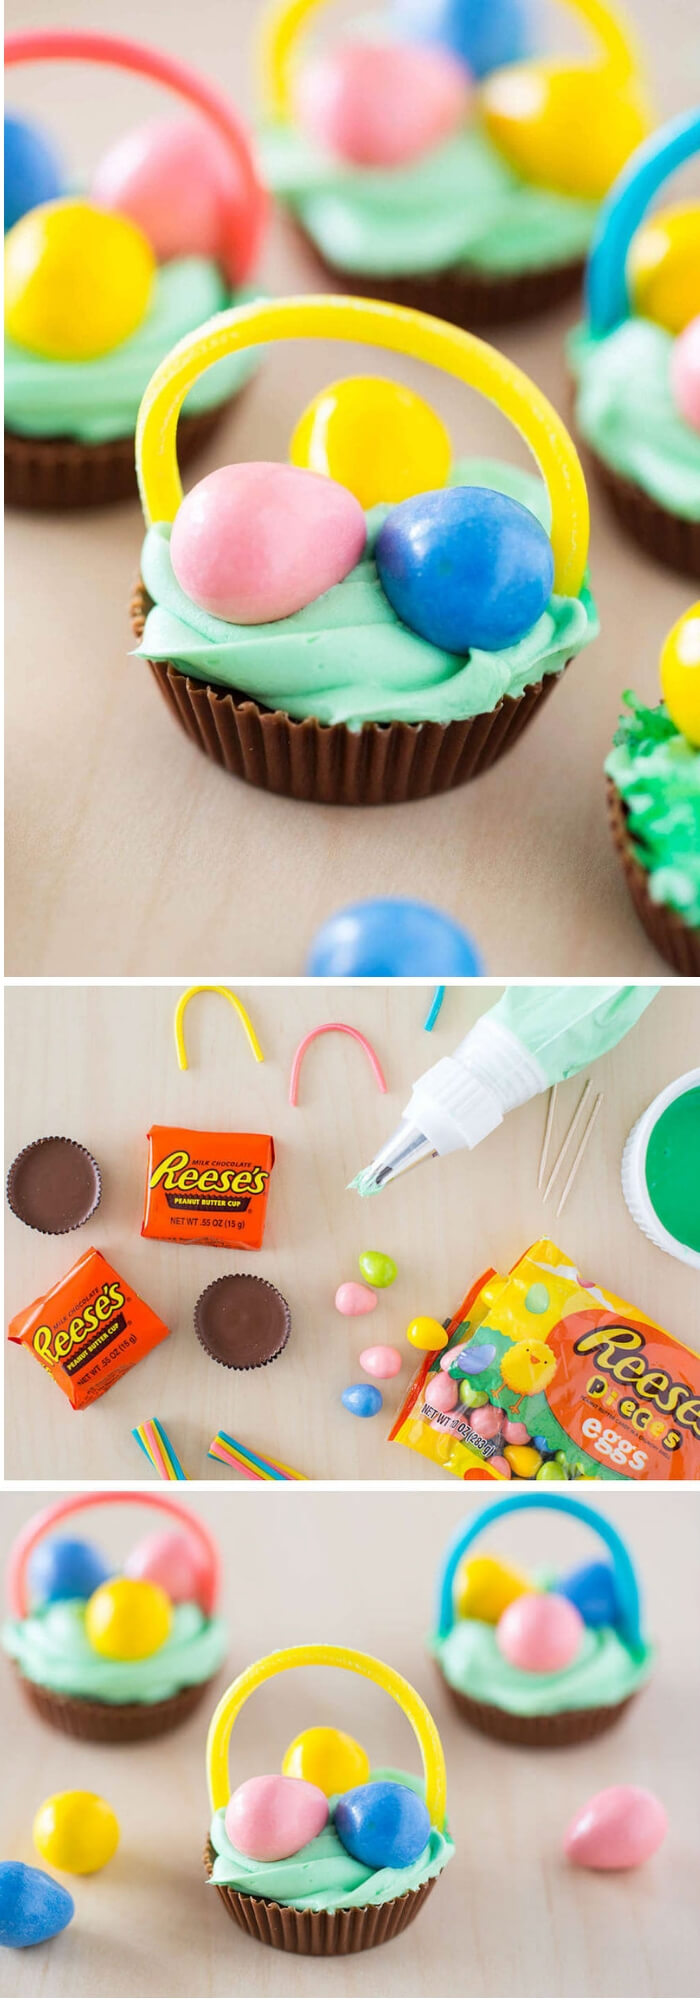 Mini Chocolate Easter Baskets | Fun & Creative Easter Basket Ideas